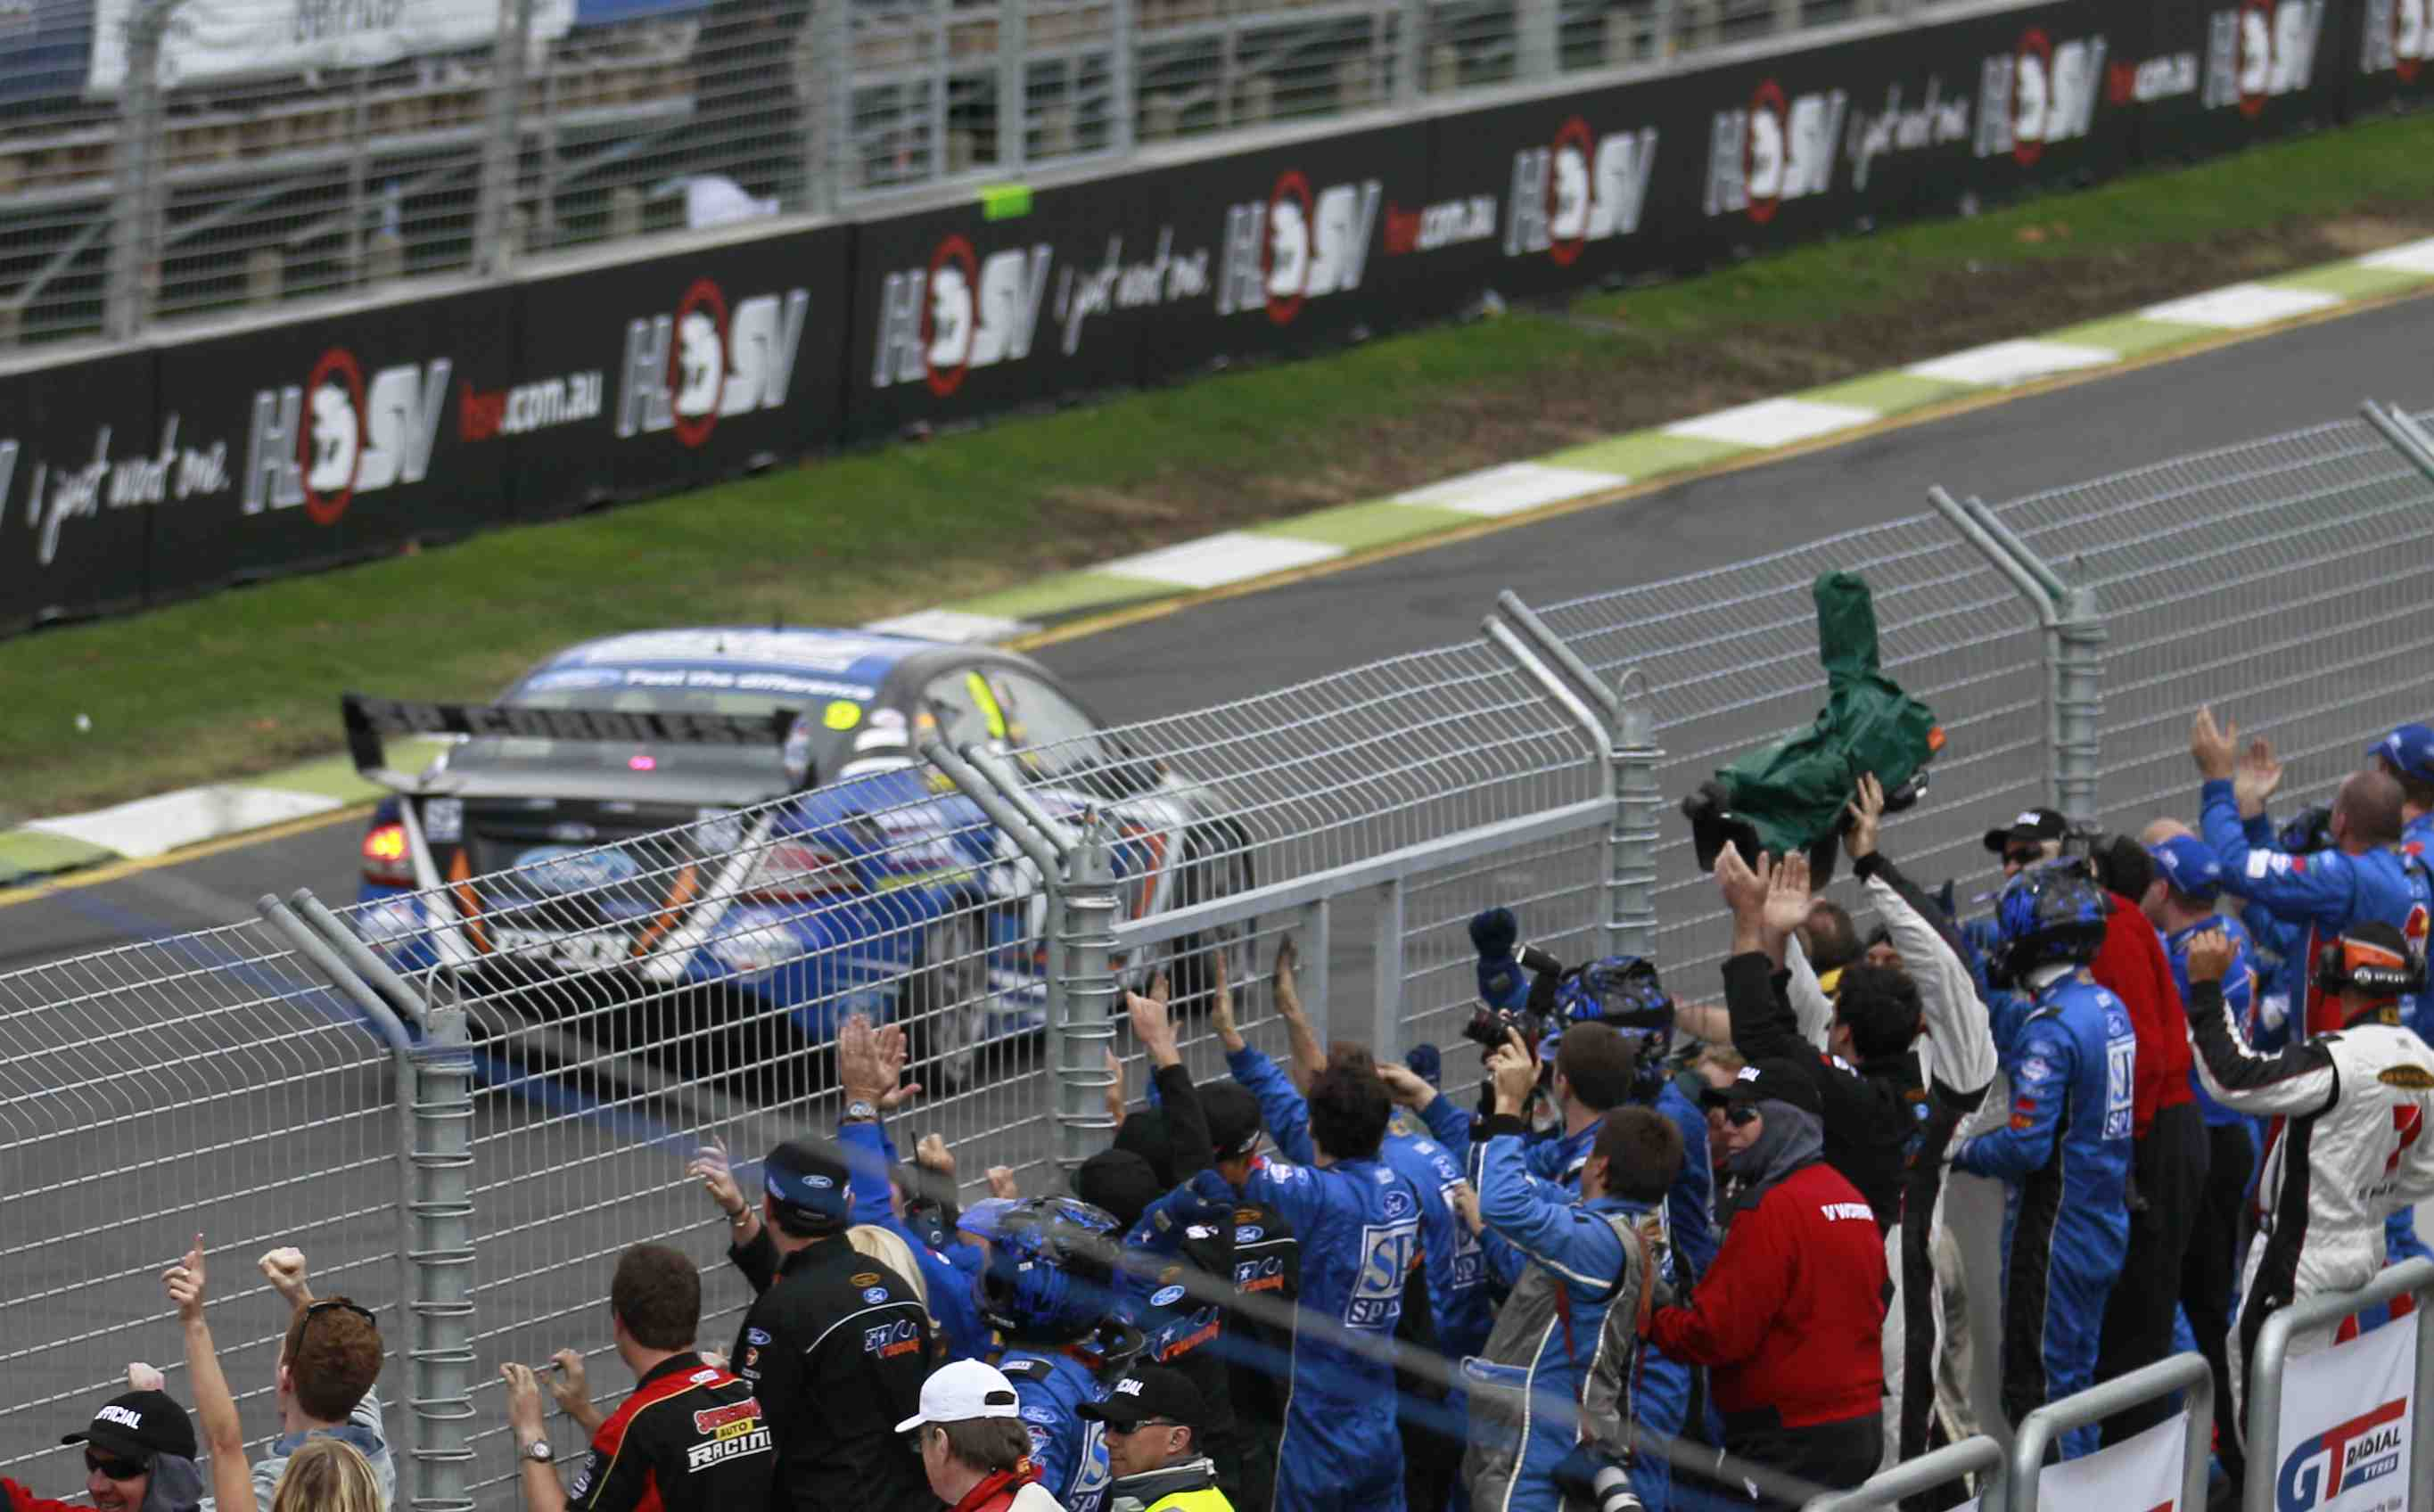 V8 Supercars clarifies burn-out regulations